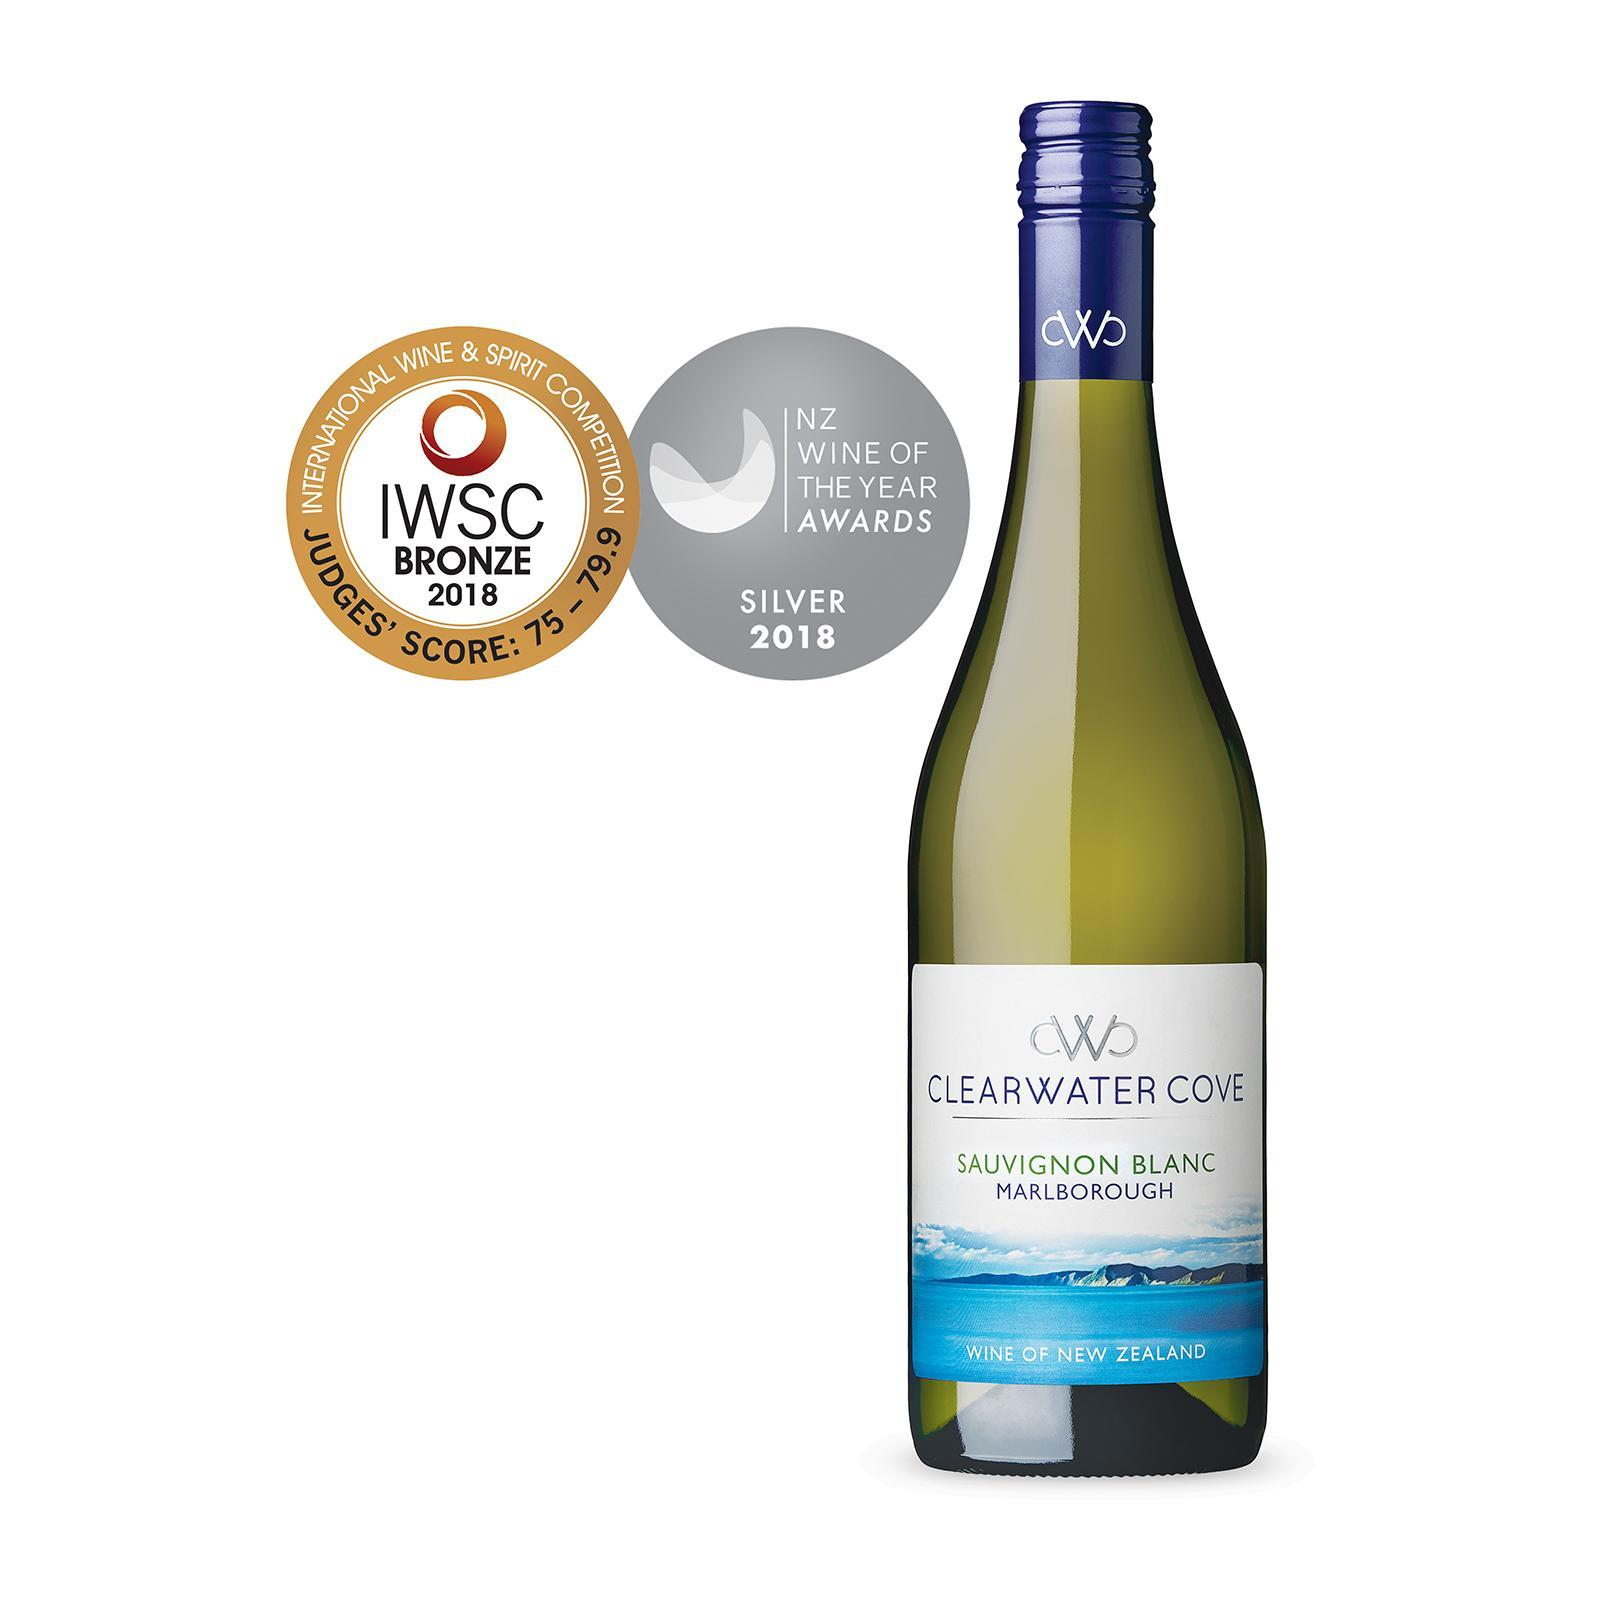 Clearwater Cove By Peter Yealands Marlborough Sauvignon Blanc - By Wines4you